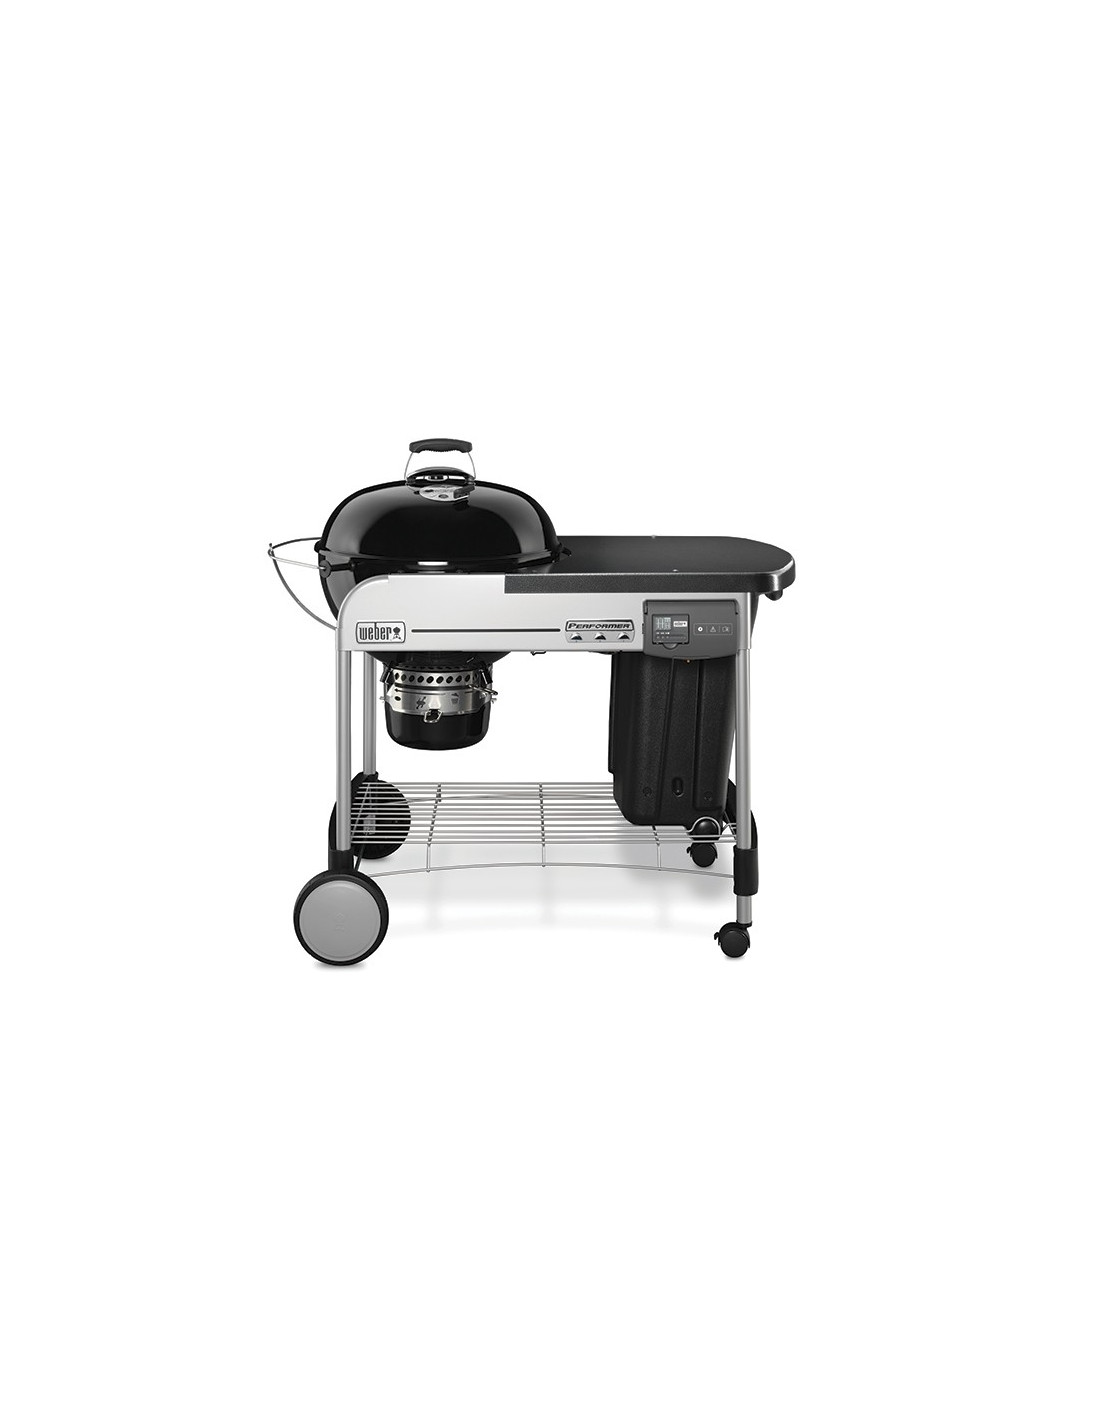 barbecue weber charbon performer deluxe 57cm gbs. Black Bedroom Furniture Sets. Home Design Ideas